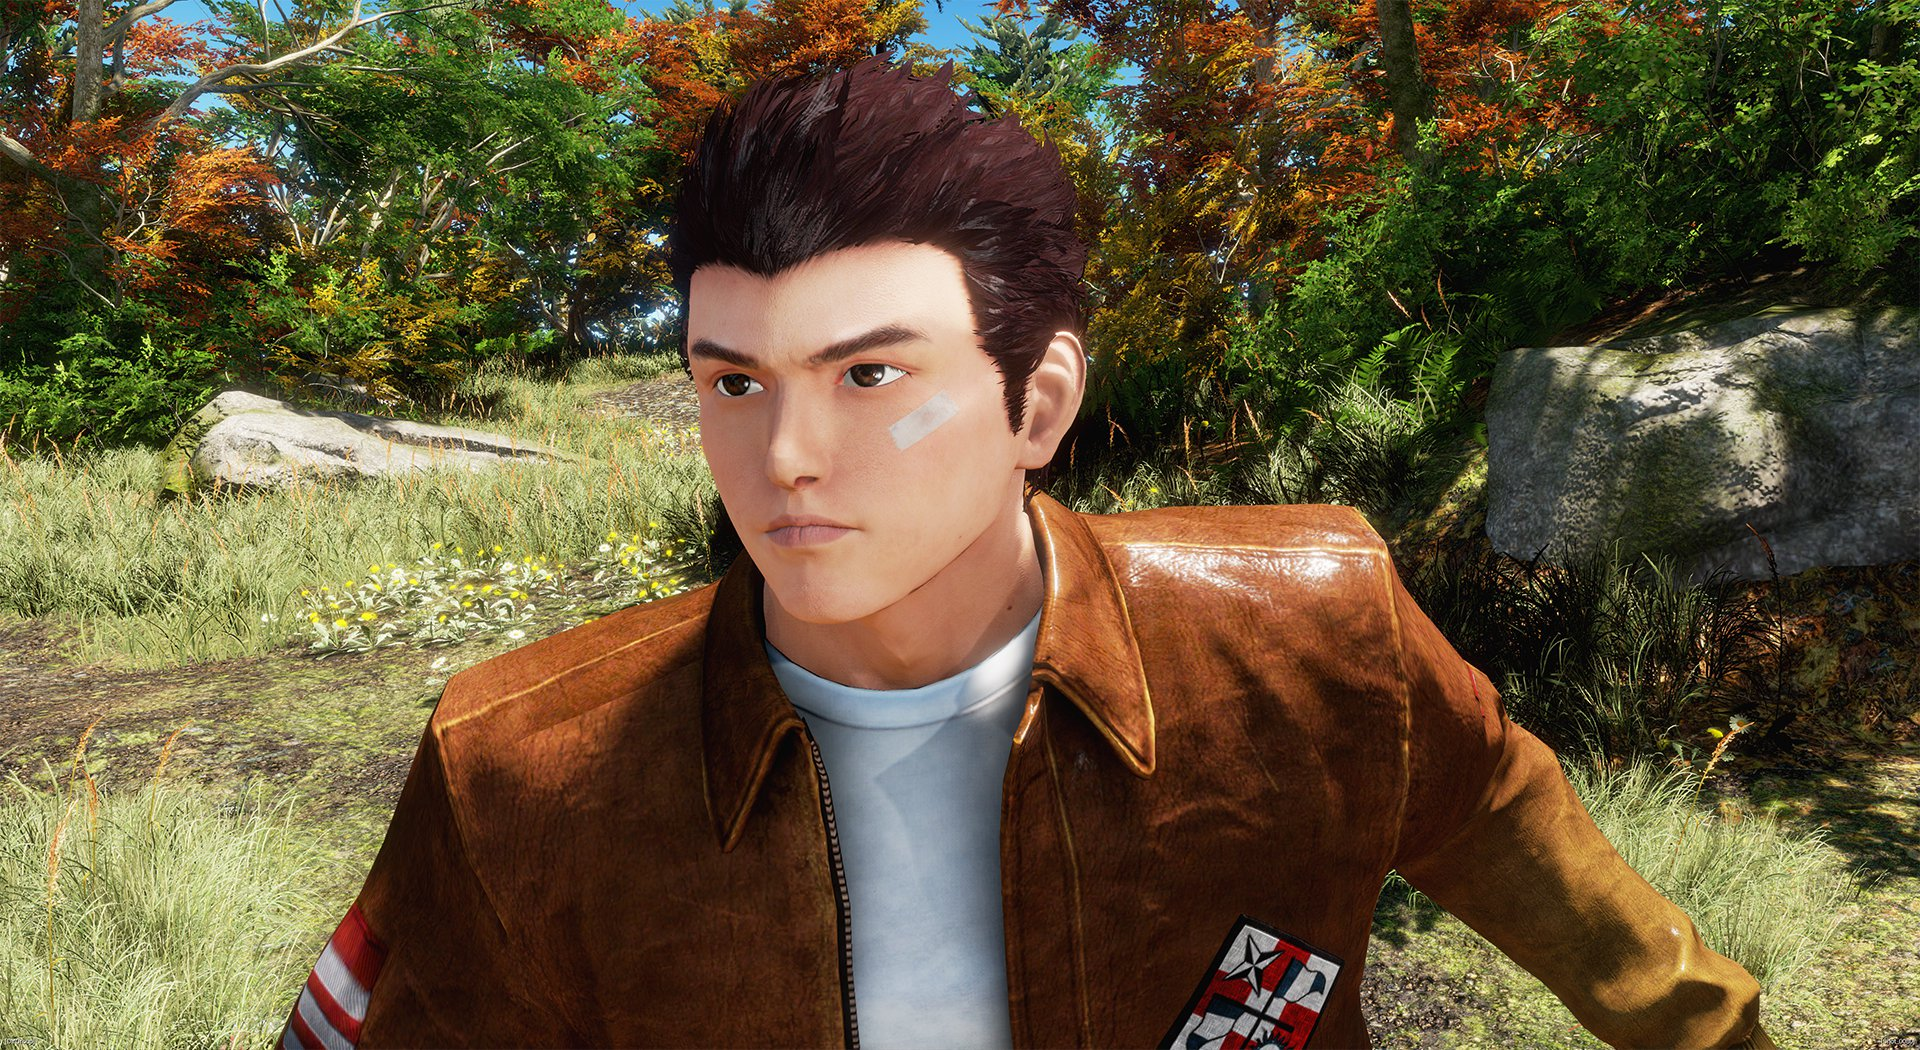 Shenmue III is allegedly still on track for 2018 screenshot